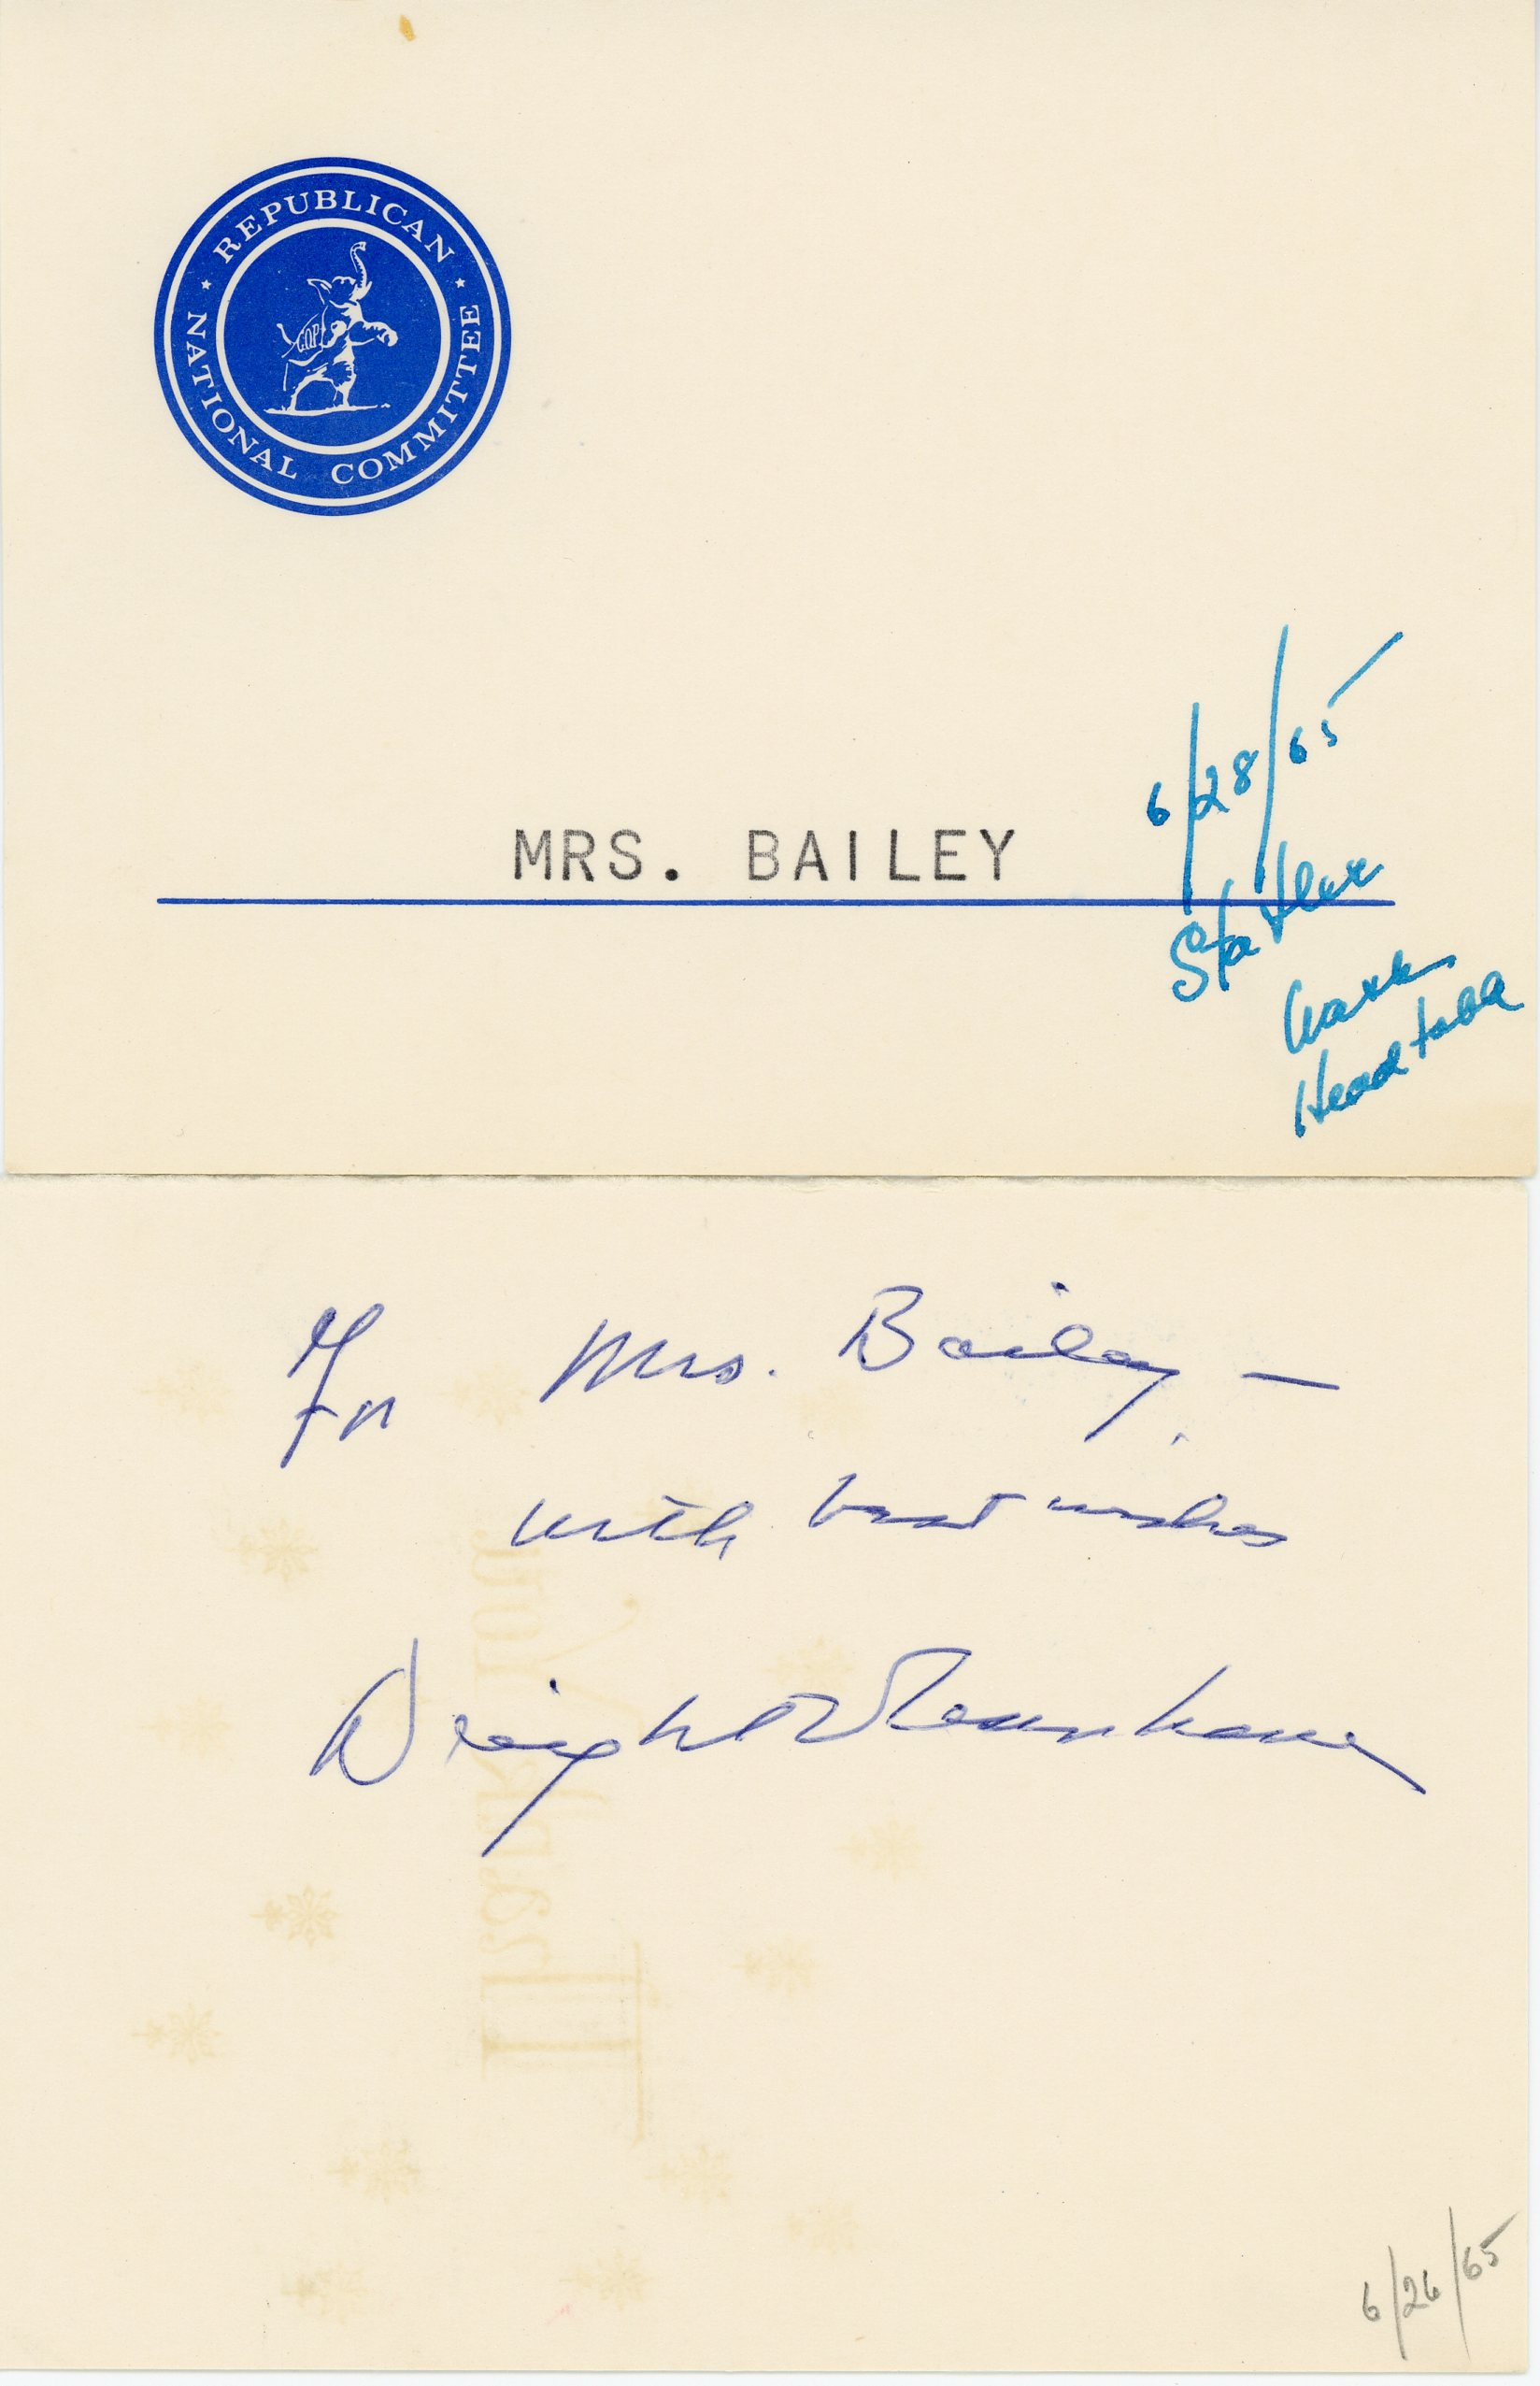 Card from Republican National Committee, 1965, June 26 and 28